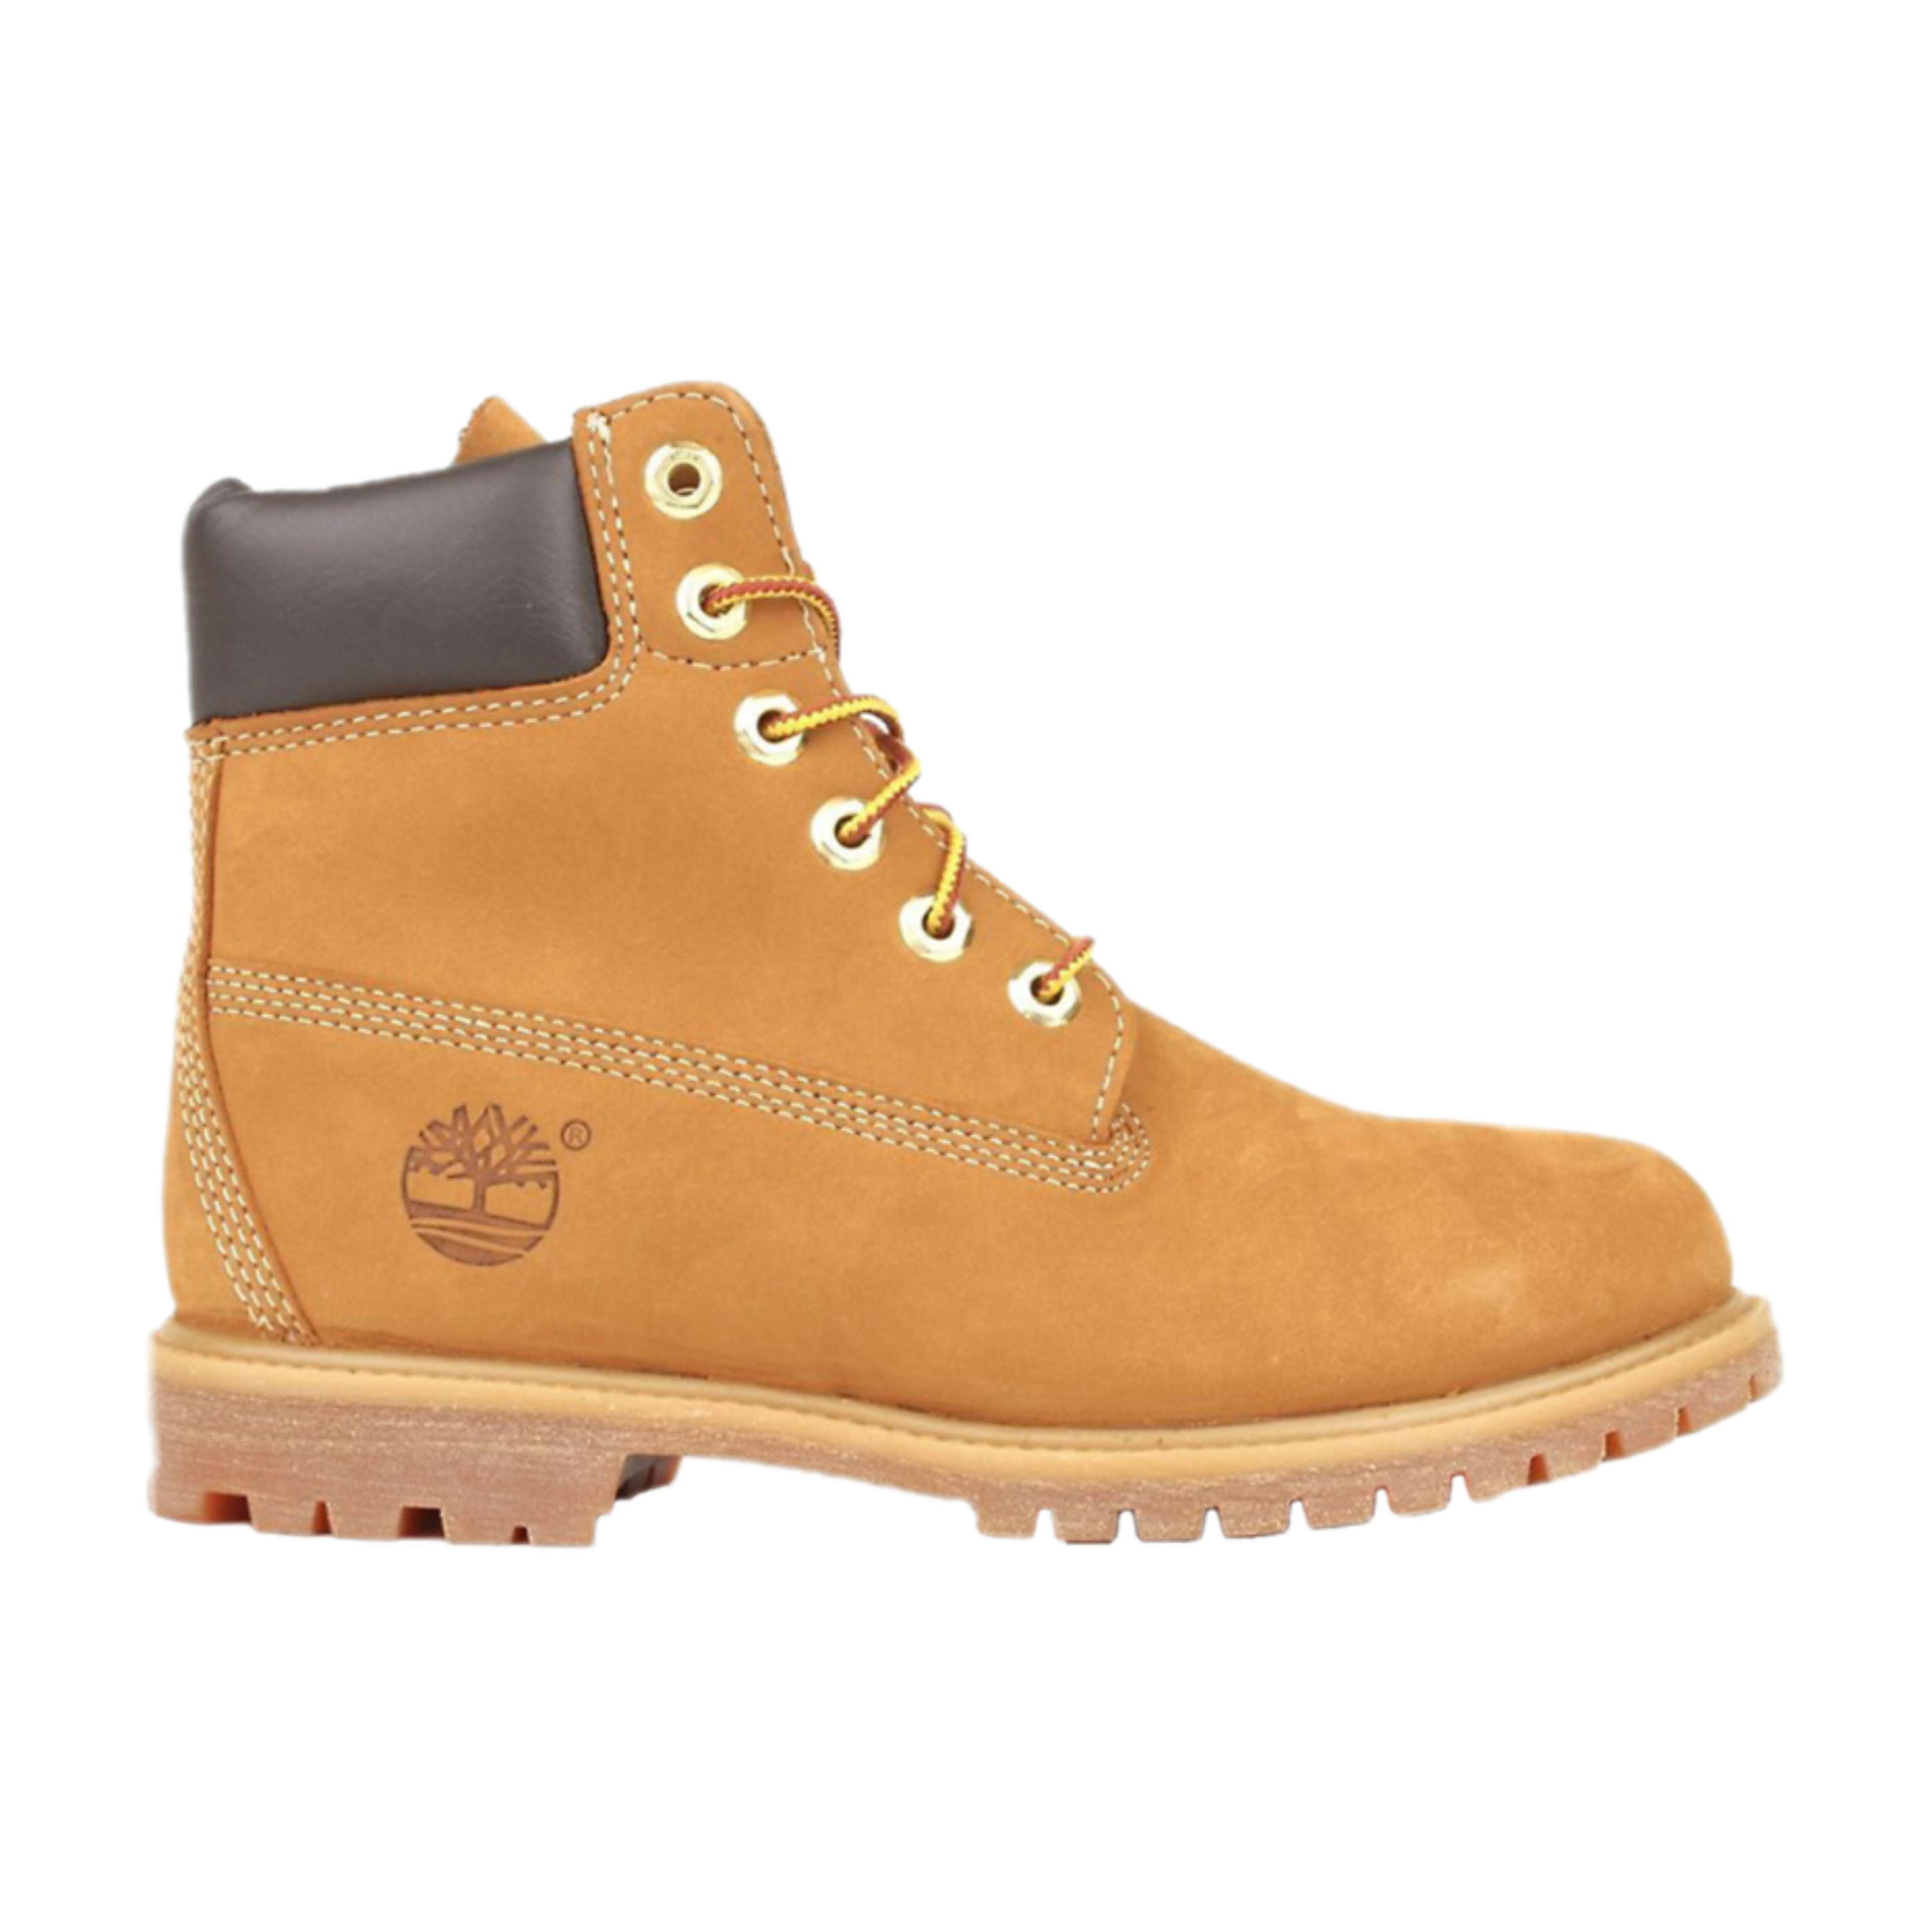 Timbs png transparent background. Sticker by kam